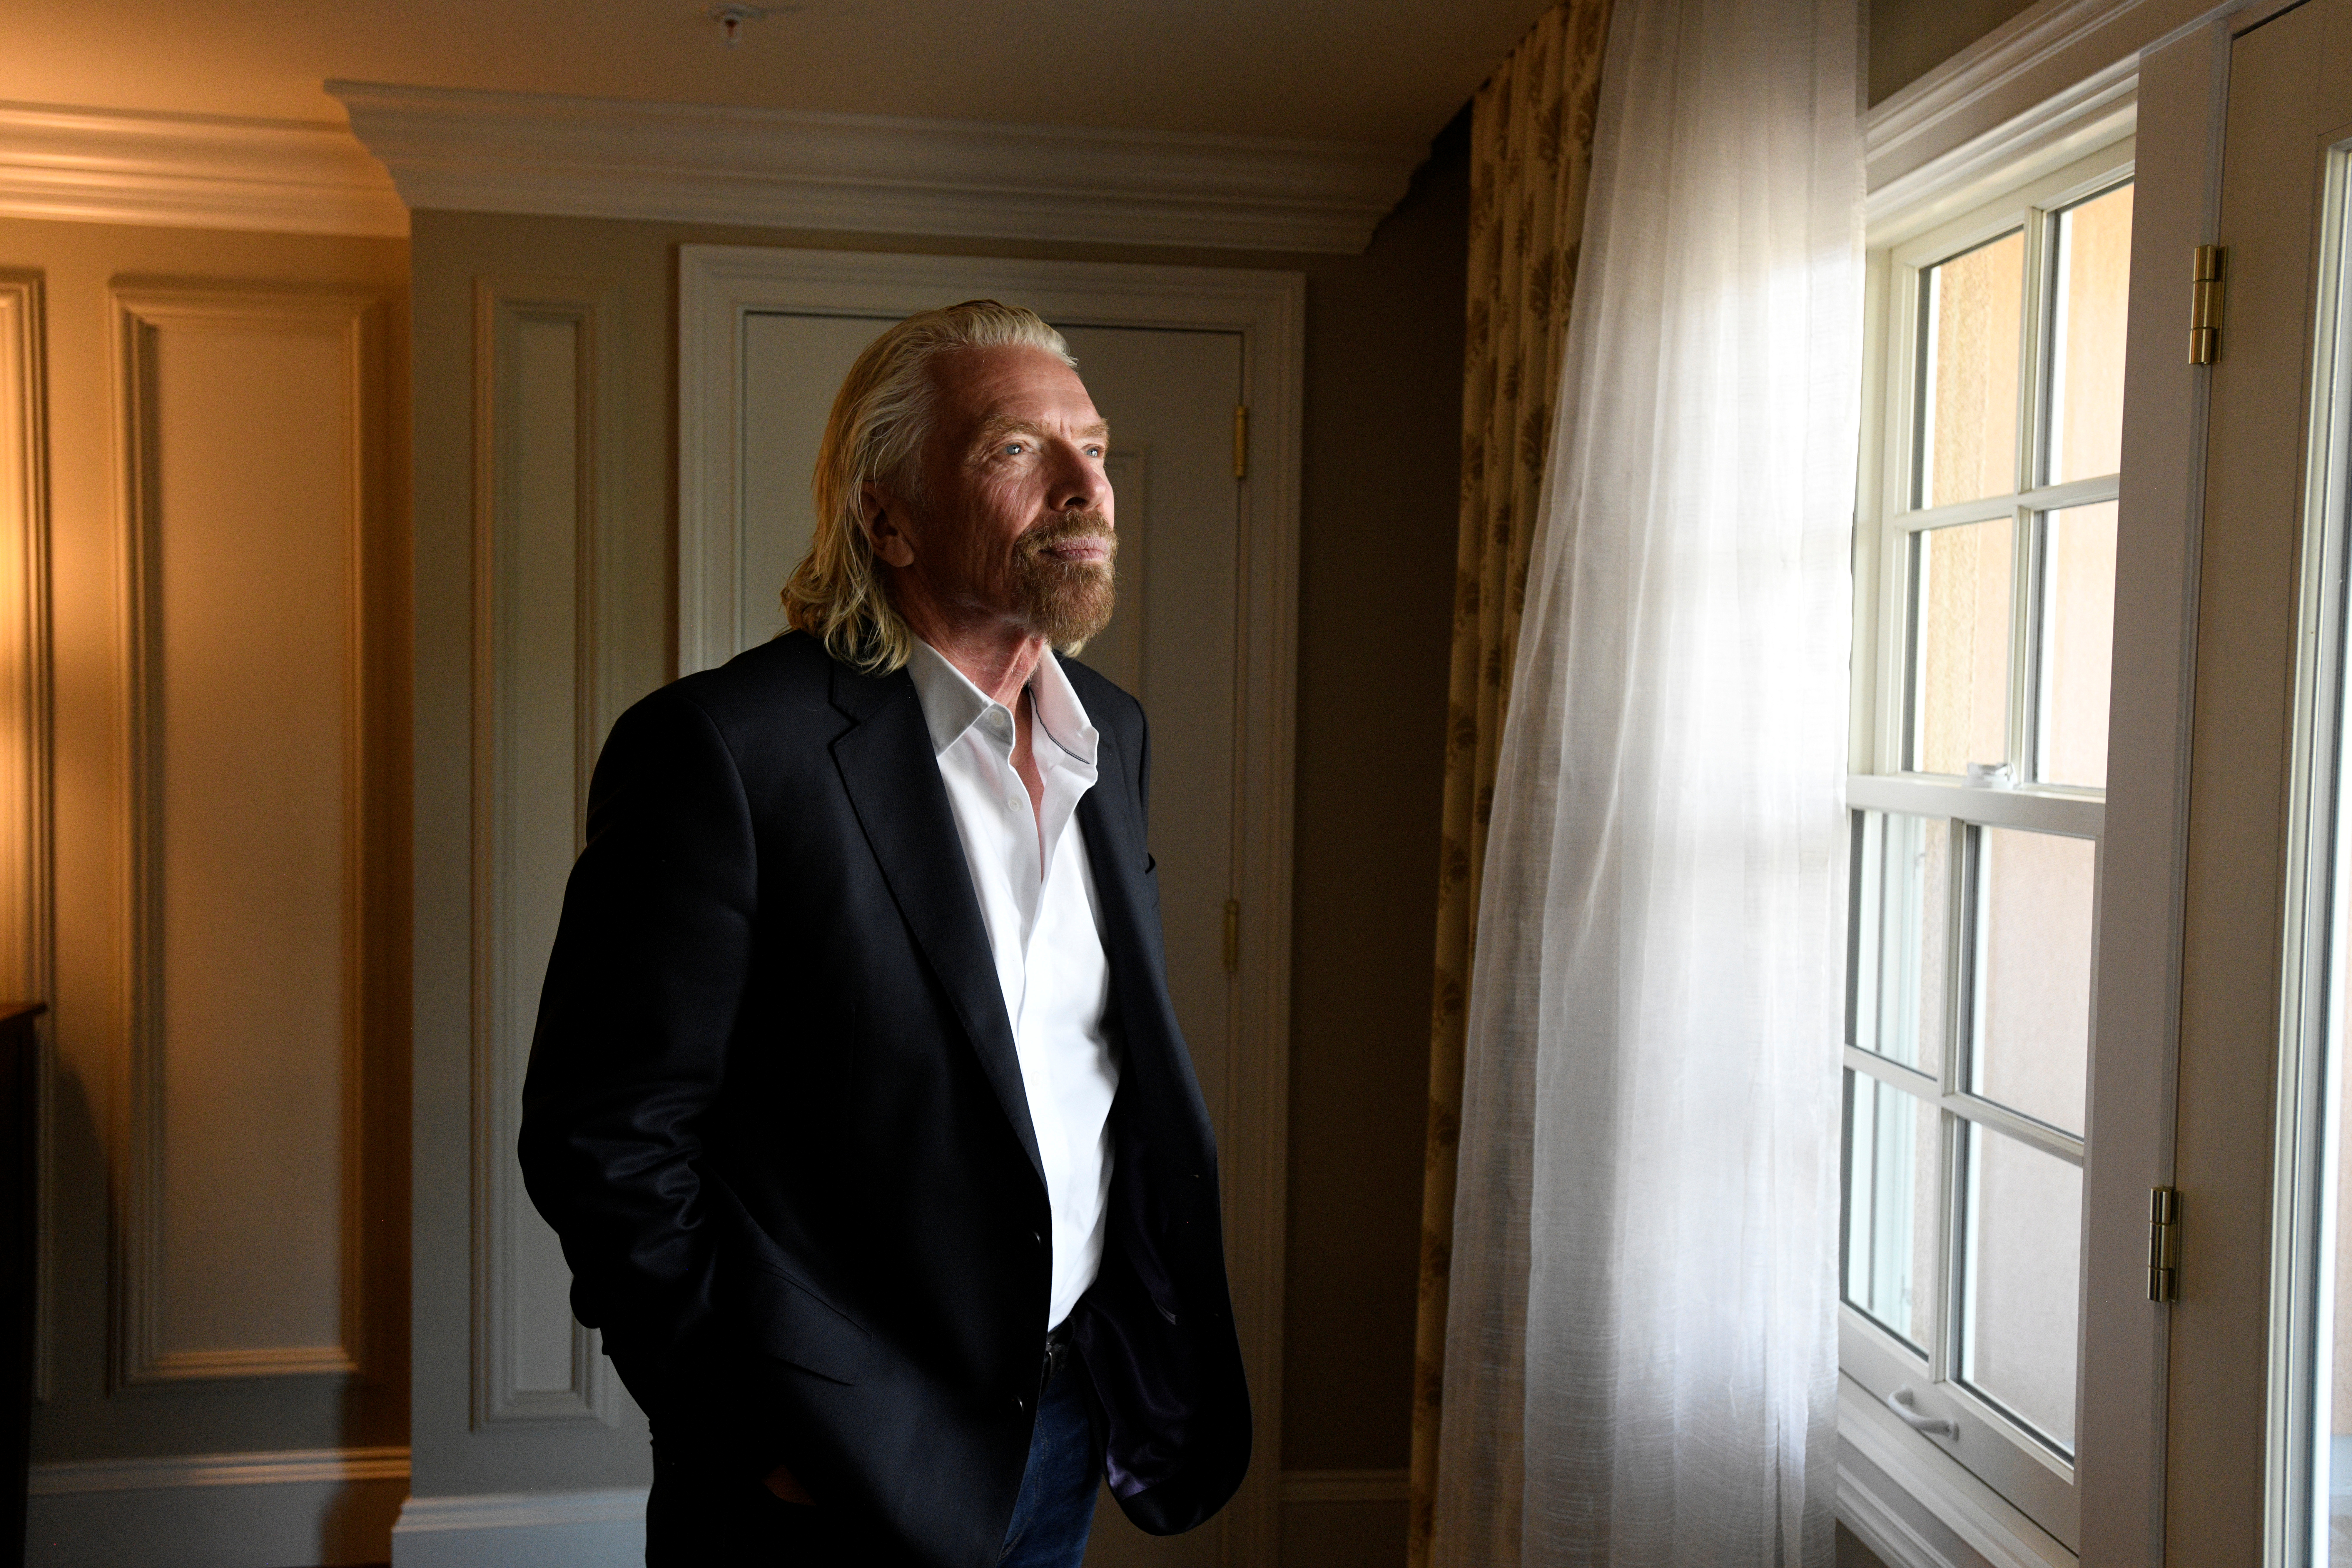 Virgin Galactic founder Richard Branson poses for a portrait in his suite at the Broadmoor Hotel during the Space Symposium in Colorado Springs, Colorado, U.S., April 11, 2019. REUTERS/Kelsey Brunner